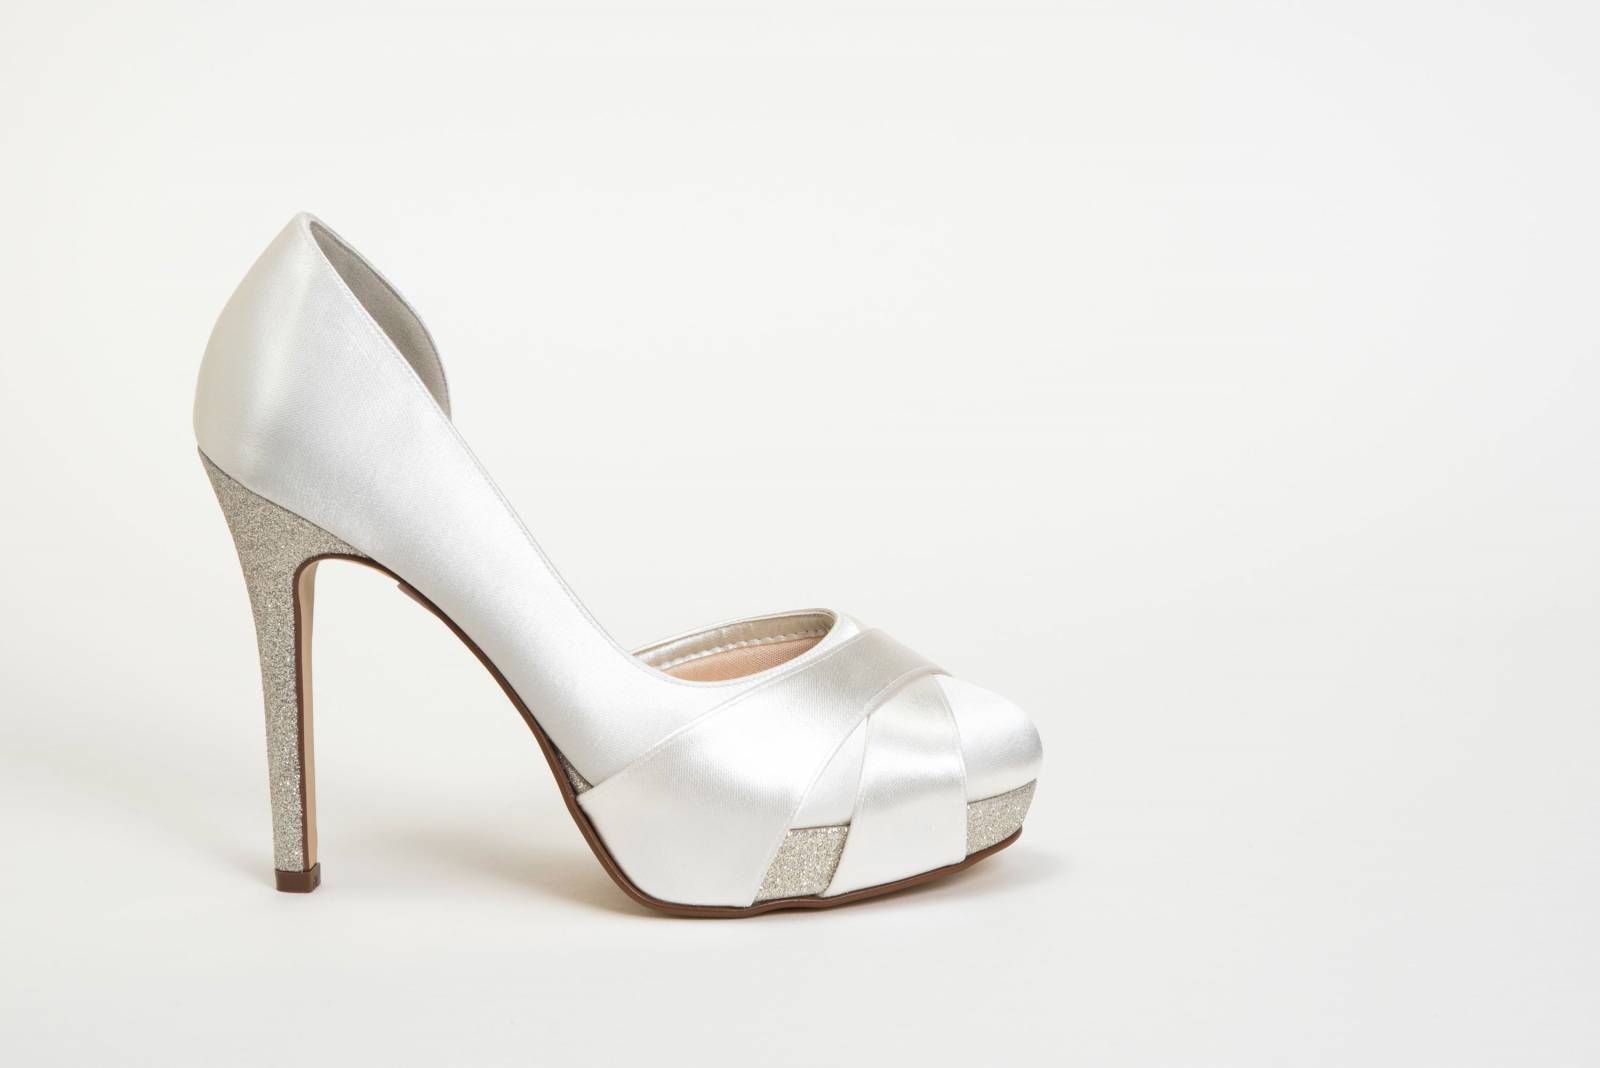 Gabrielli - Schoenen - House of Weddings  - 28